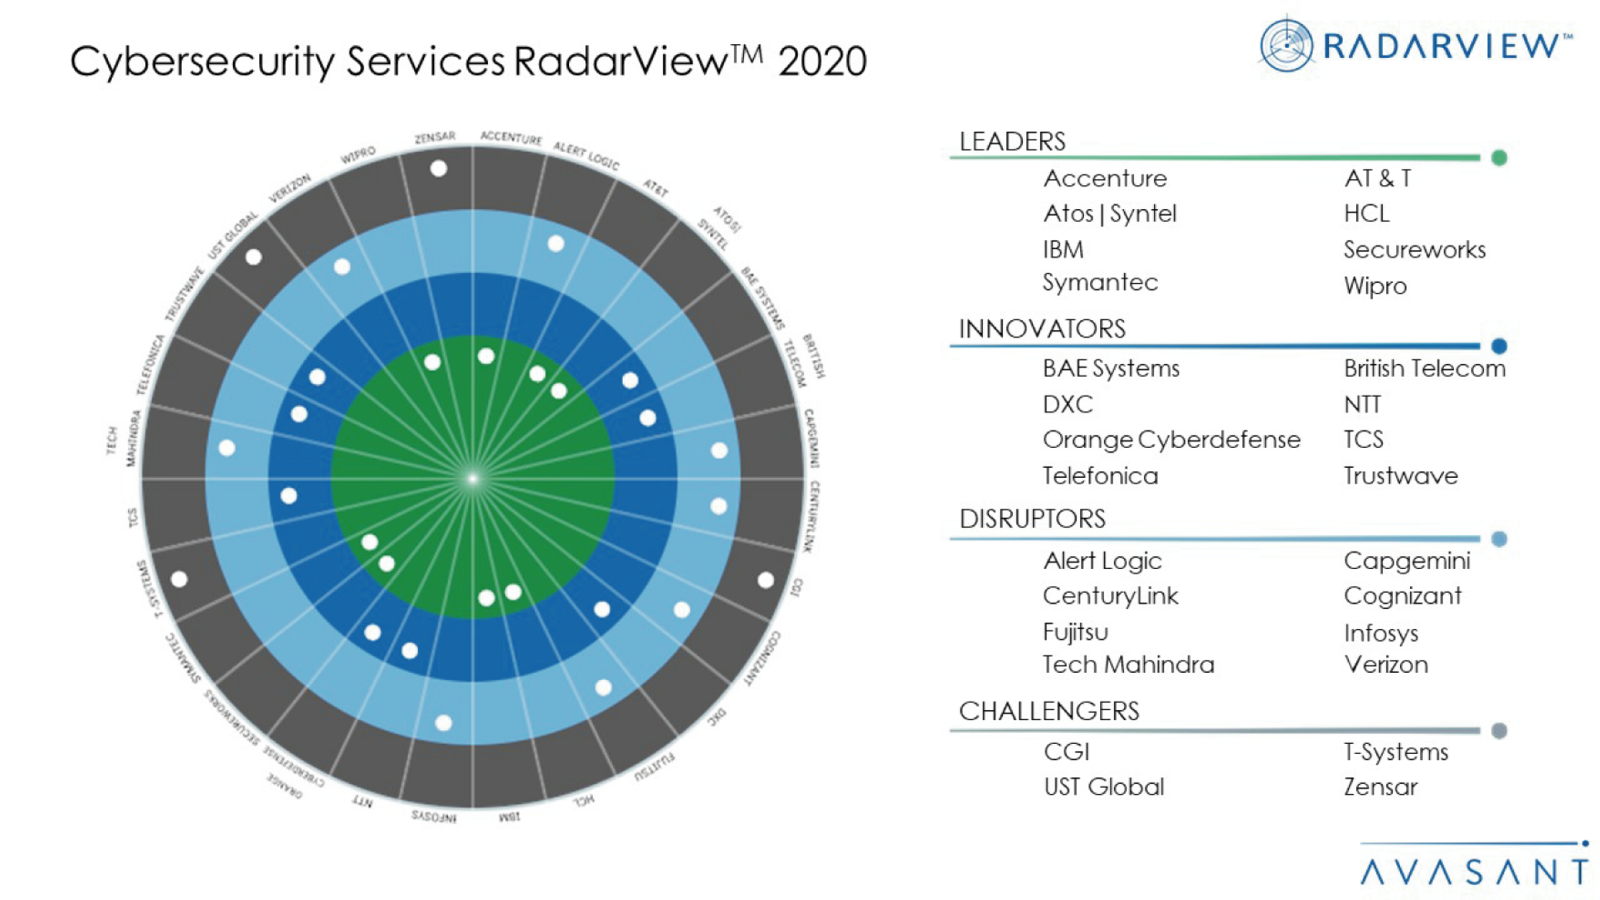 Cybersecurity Services RadarView 2020